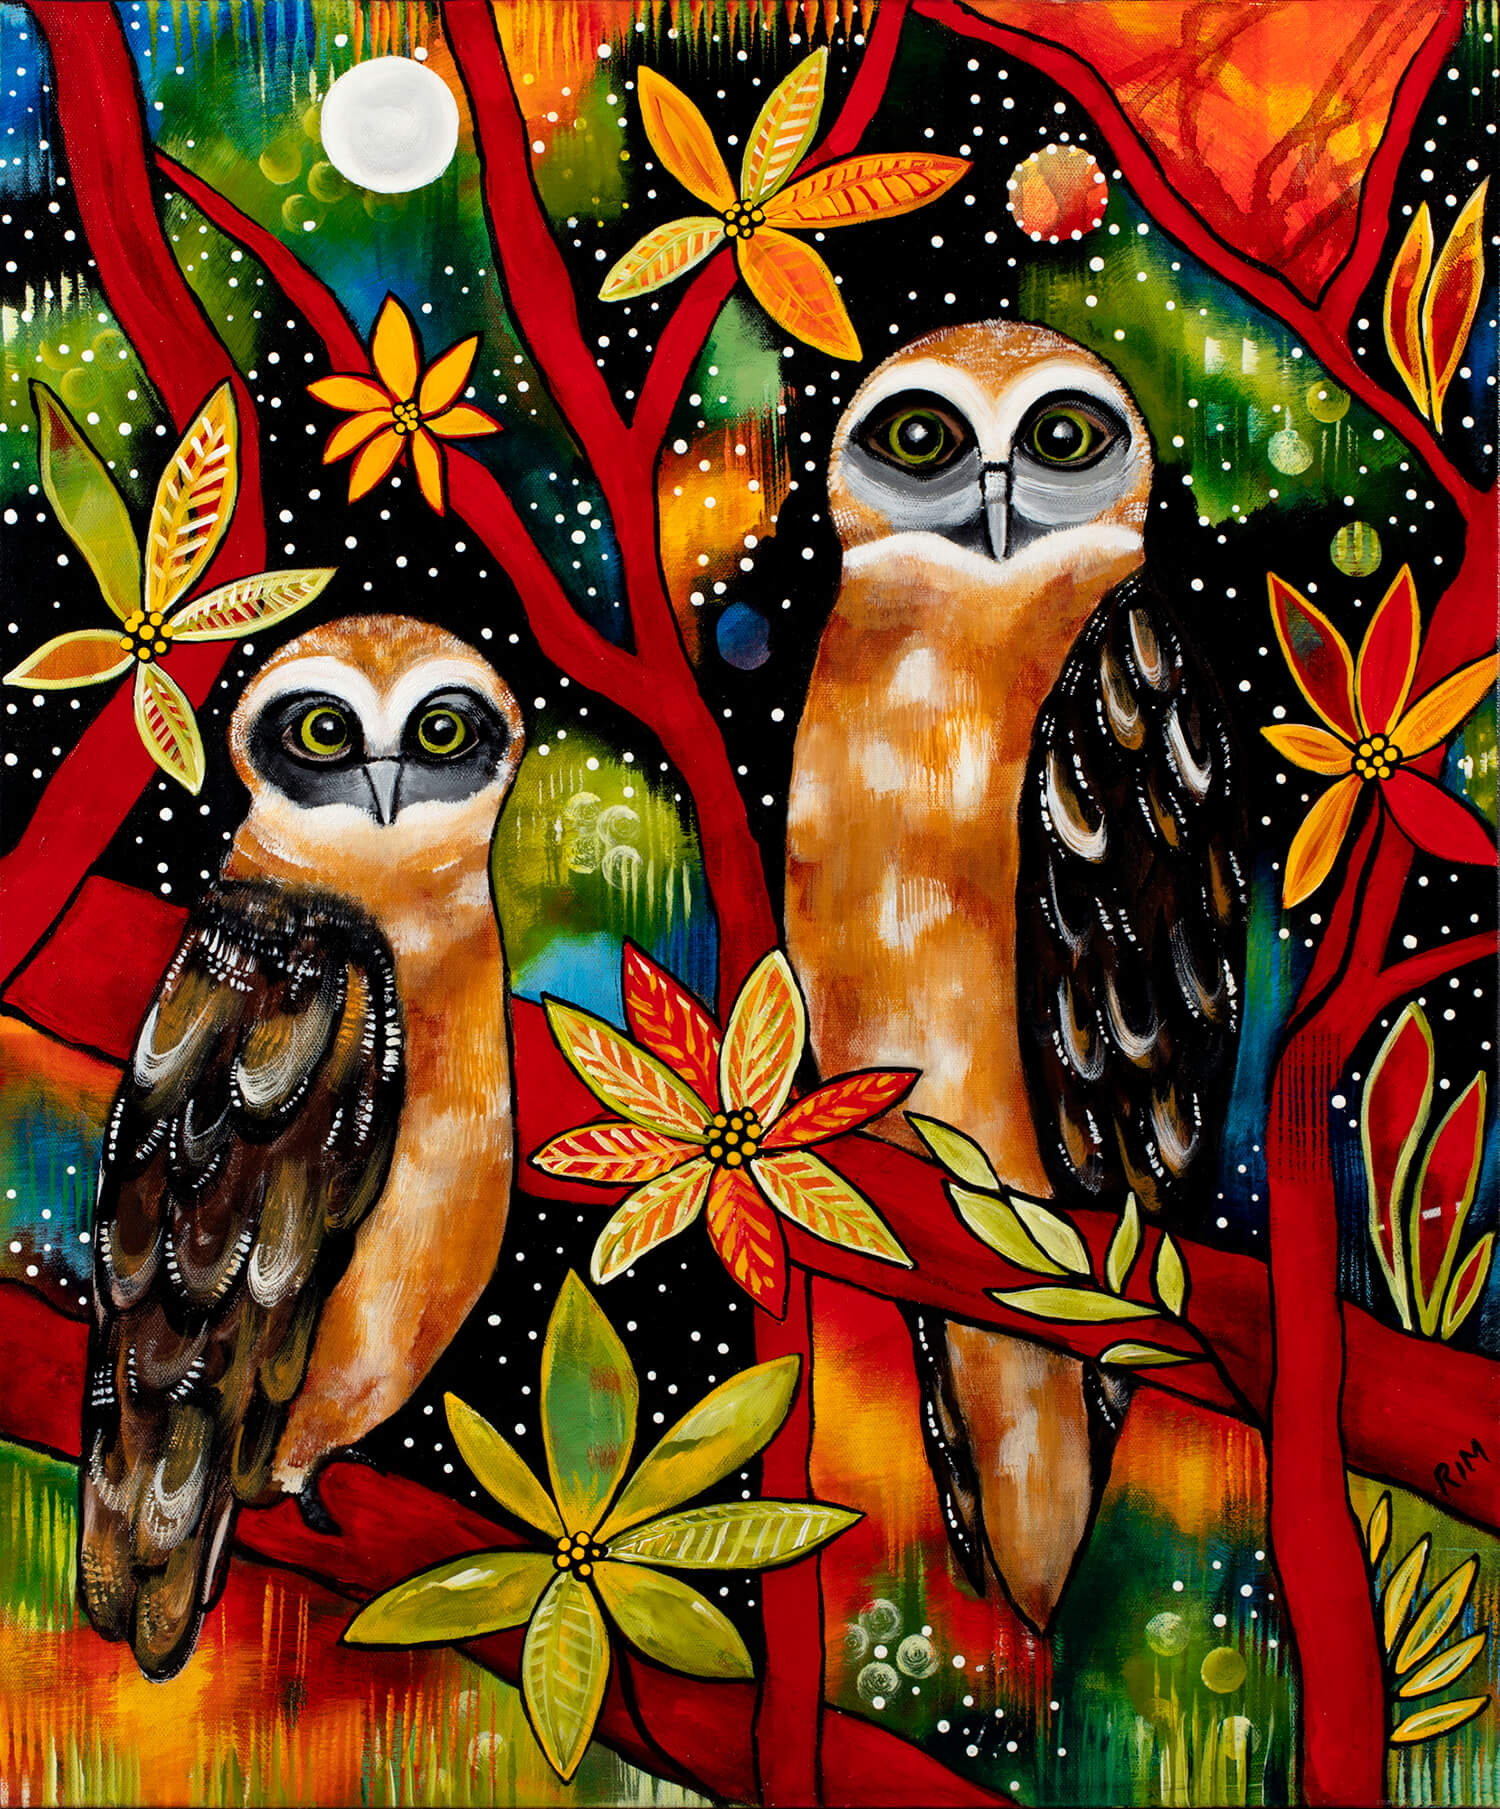 The Boobook Brothers (The Boobook Owls)